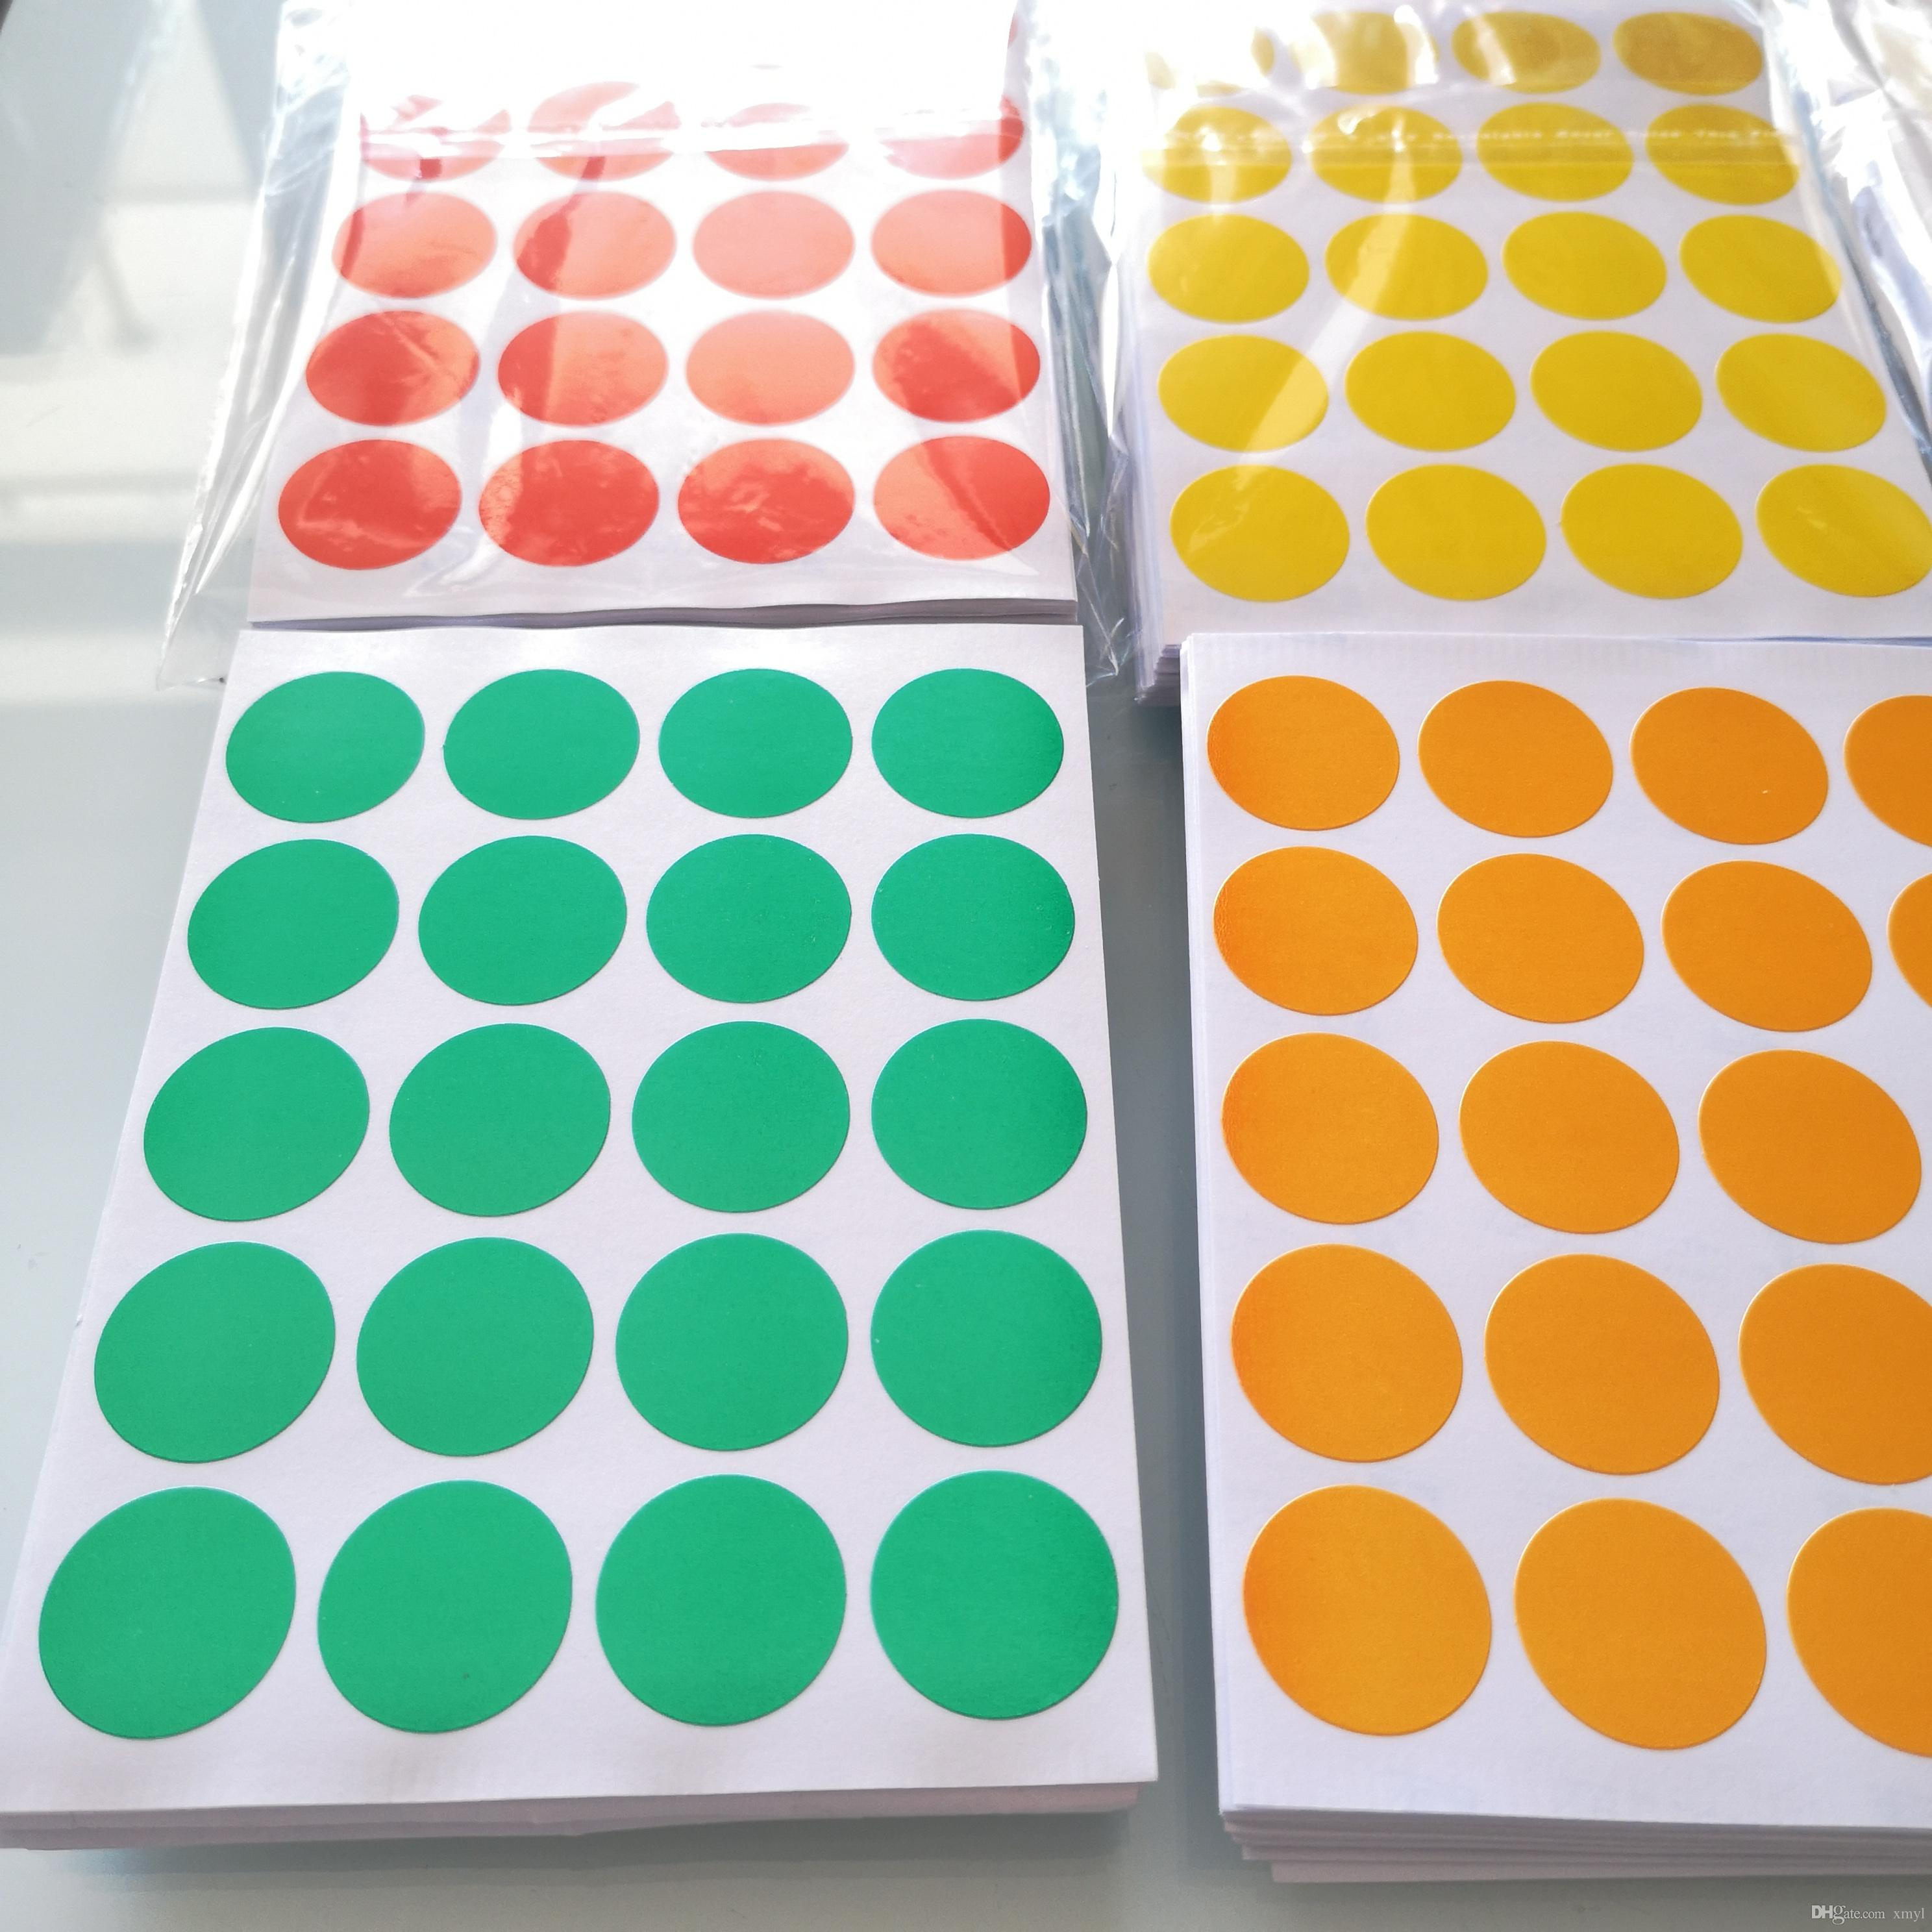 1200 pcs Diameter 20mm Colorful round paper sticker, white/yellow/red/green/blue/orange, Item No.OF23